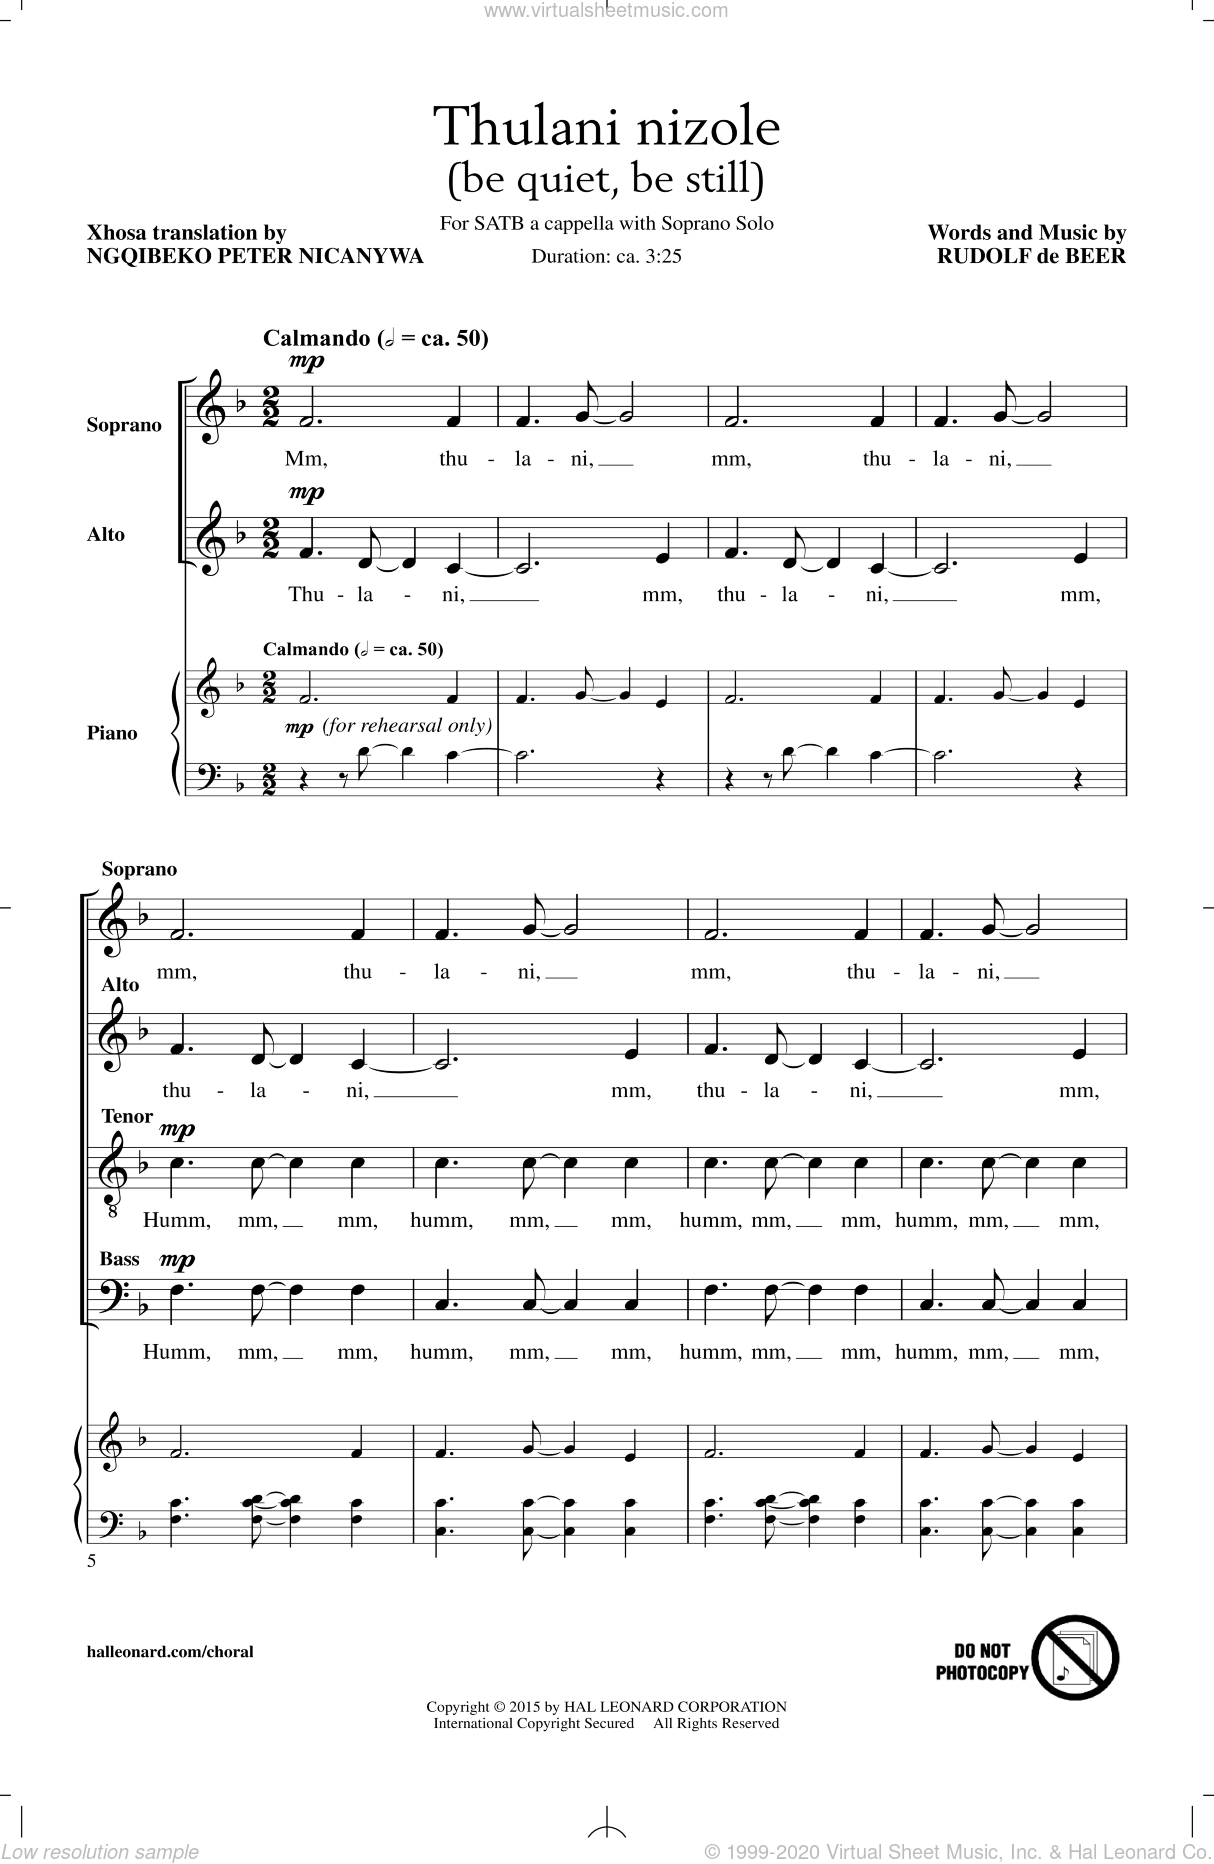 Thulani Nizole sheet music for choir and piano (SATB) by Rudolf de Beer. Score Image Preview.